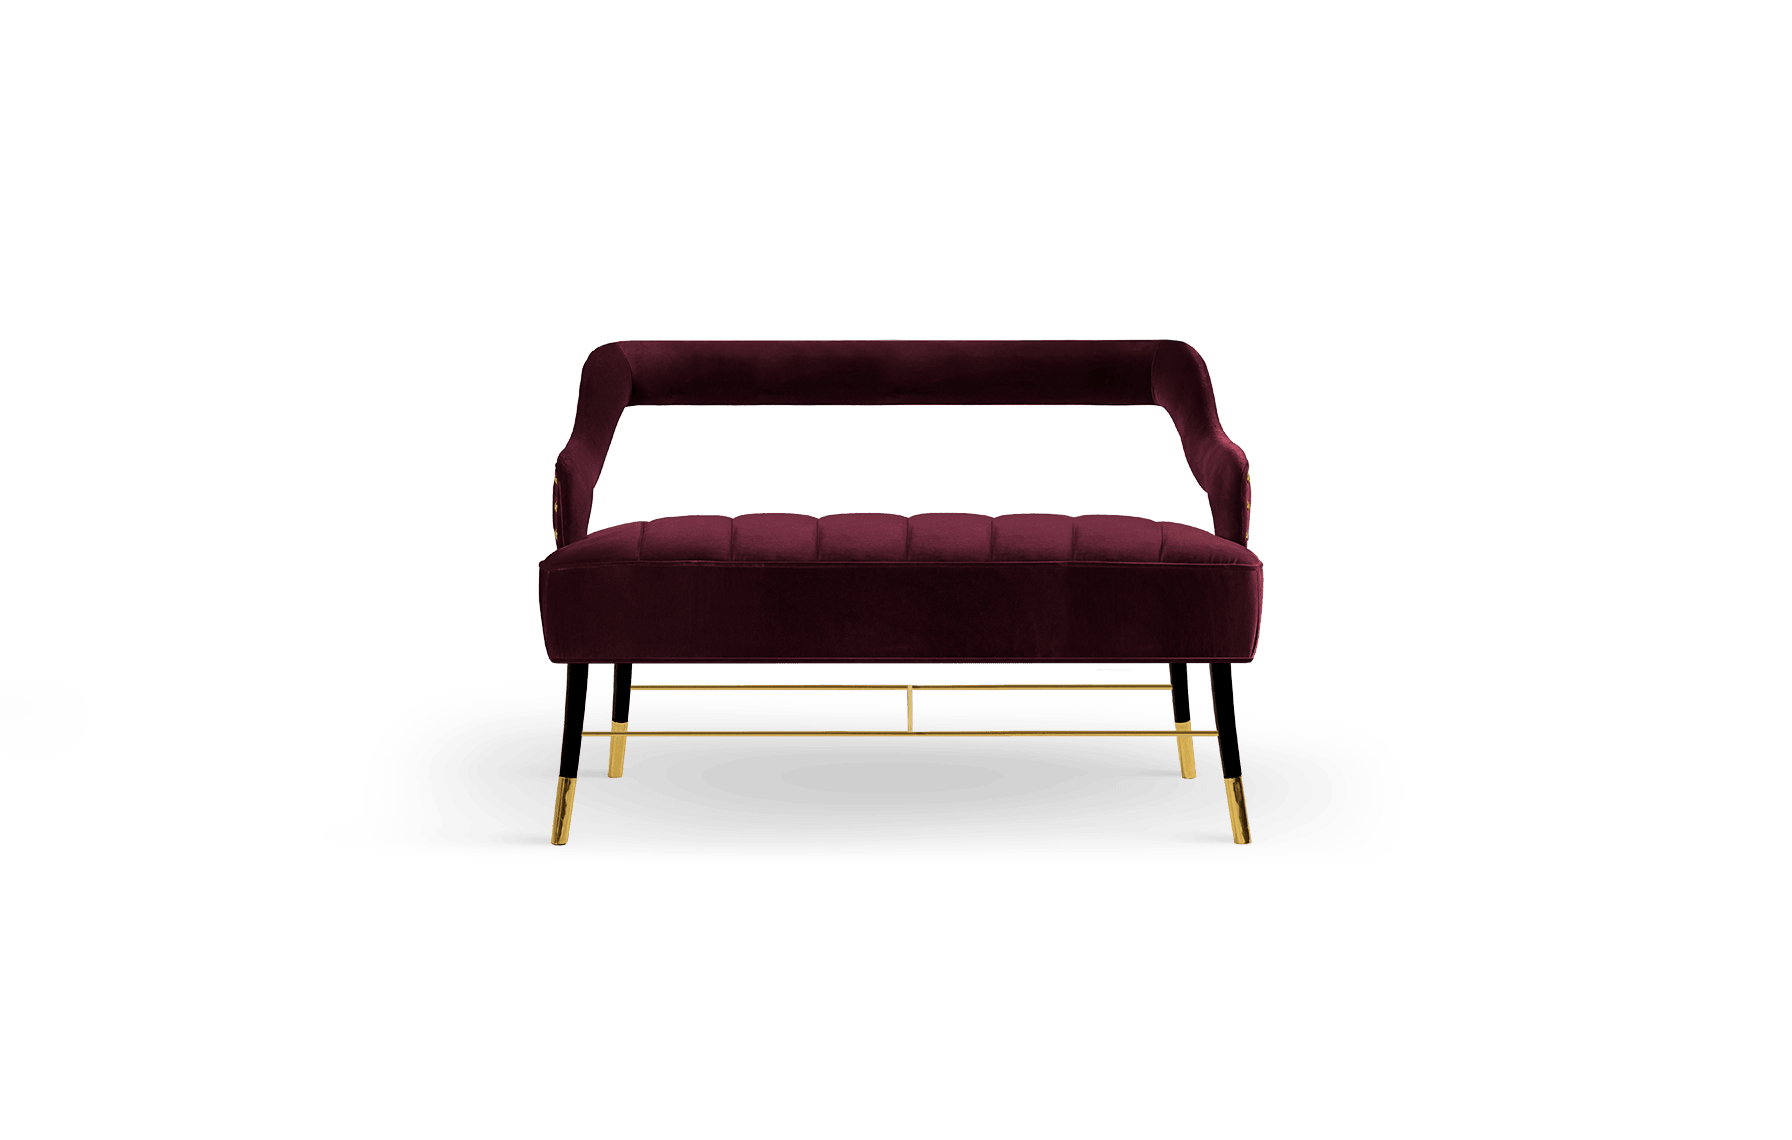 Kelly Mid-Century Modern Twin Seat in wine red cotton velvet